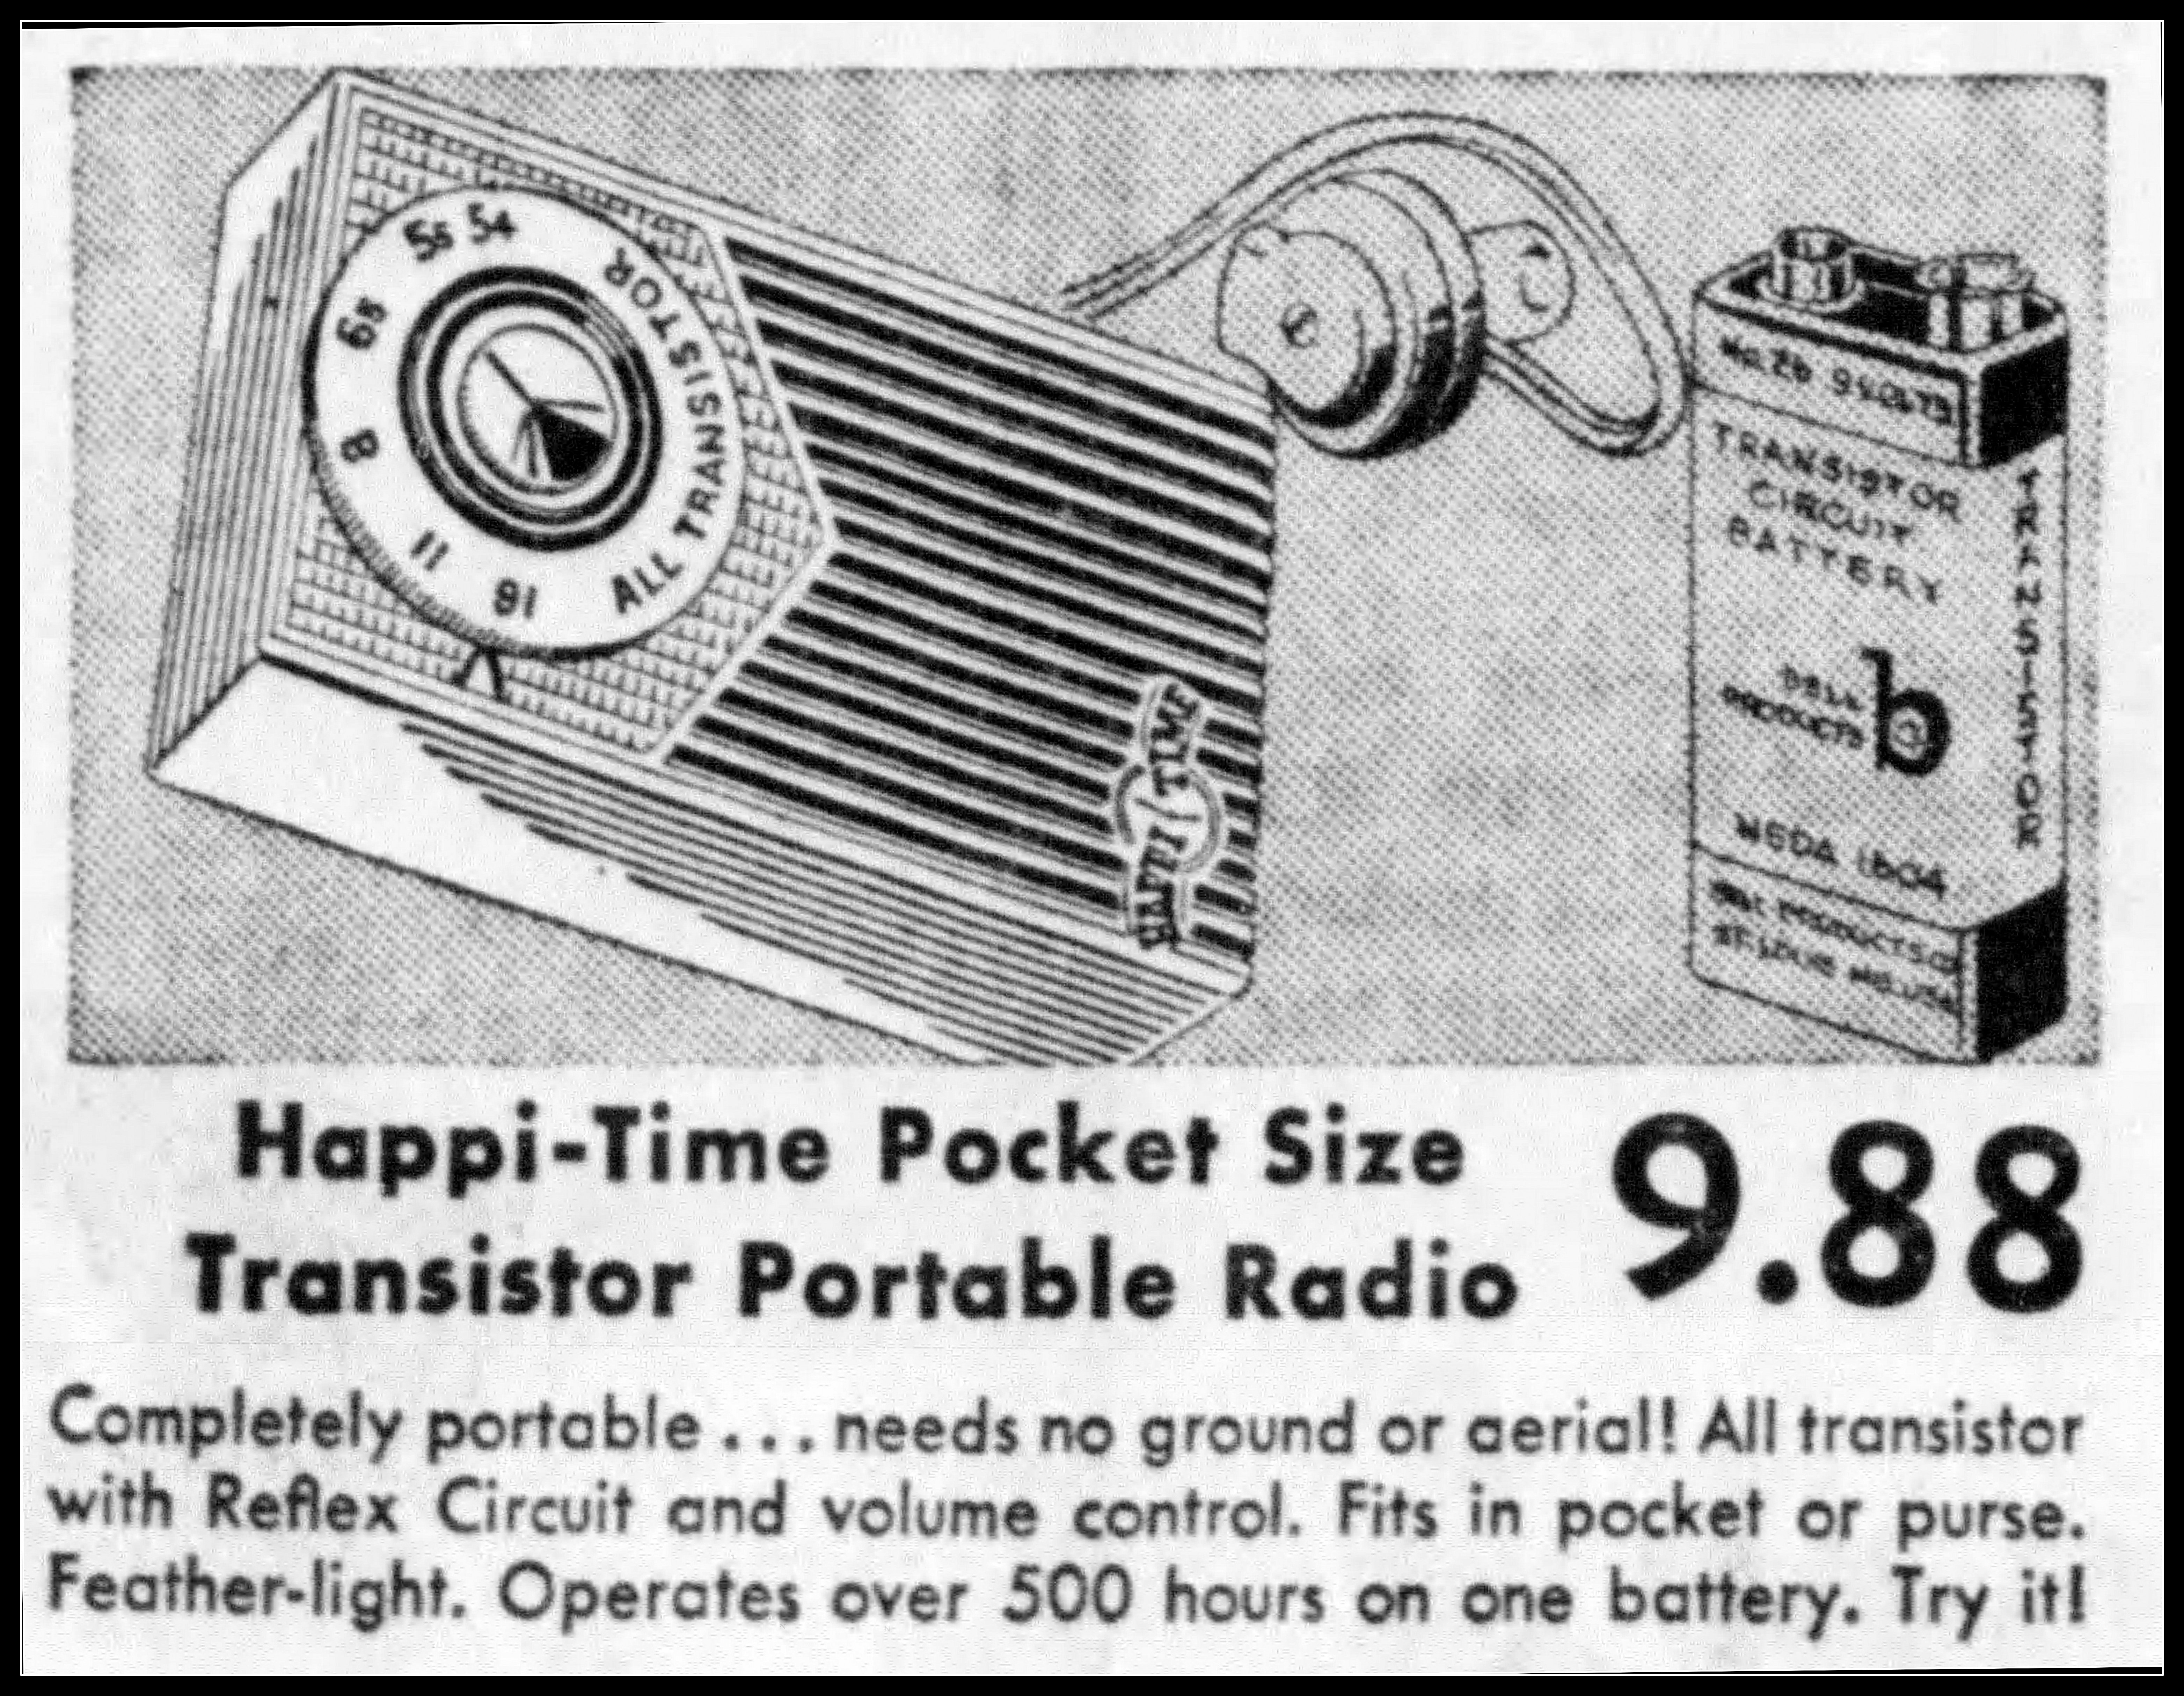 Filevintage Newspaper Advertising For The Happi Time Transistor One Radio By Bell Products Also